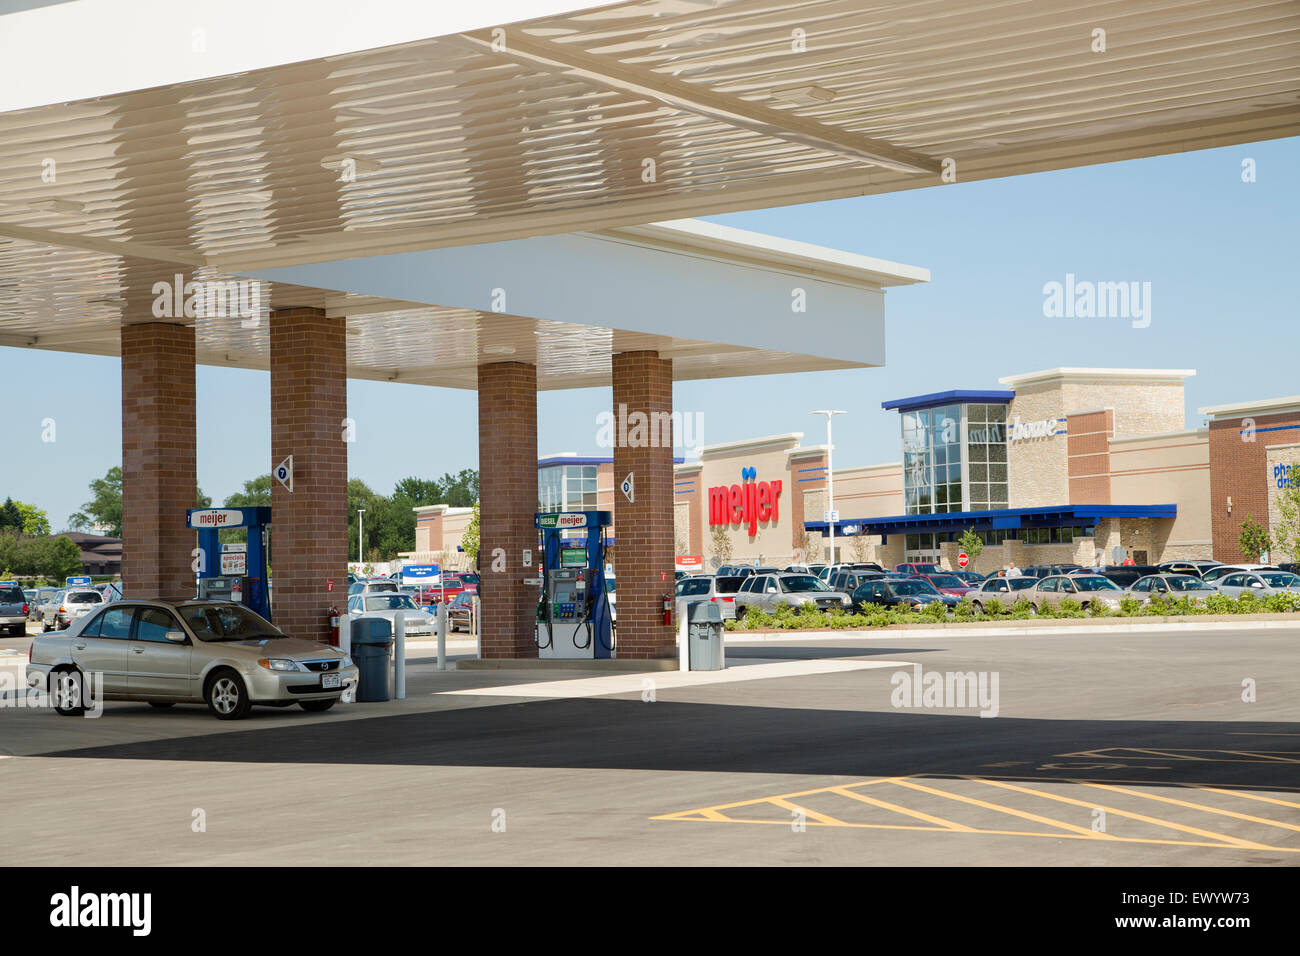 A Meijer supermarket grocery store chain store with a gas station in Wisconsin. - Stock Image